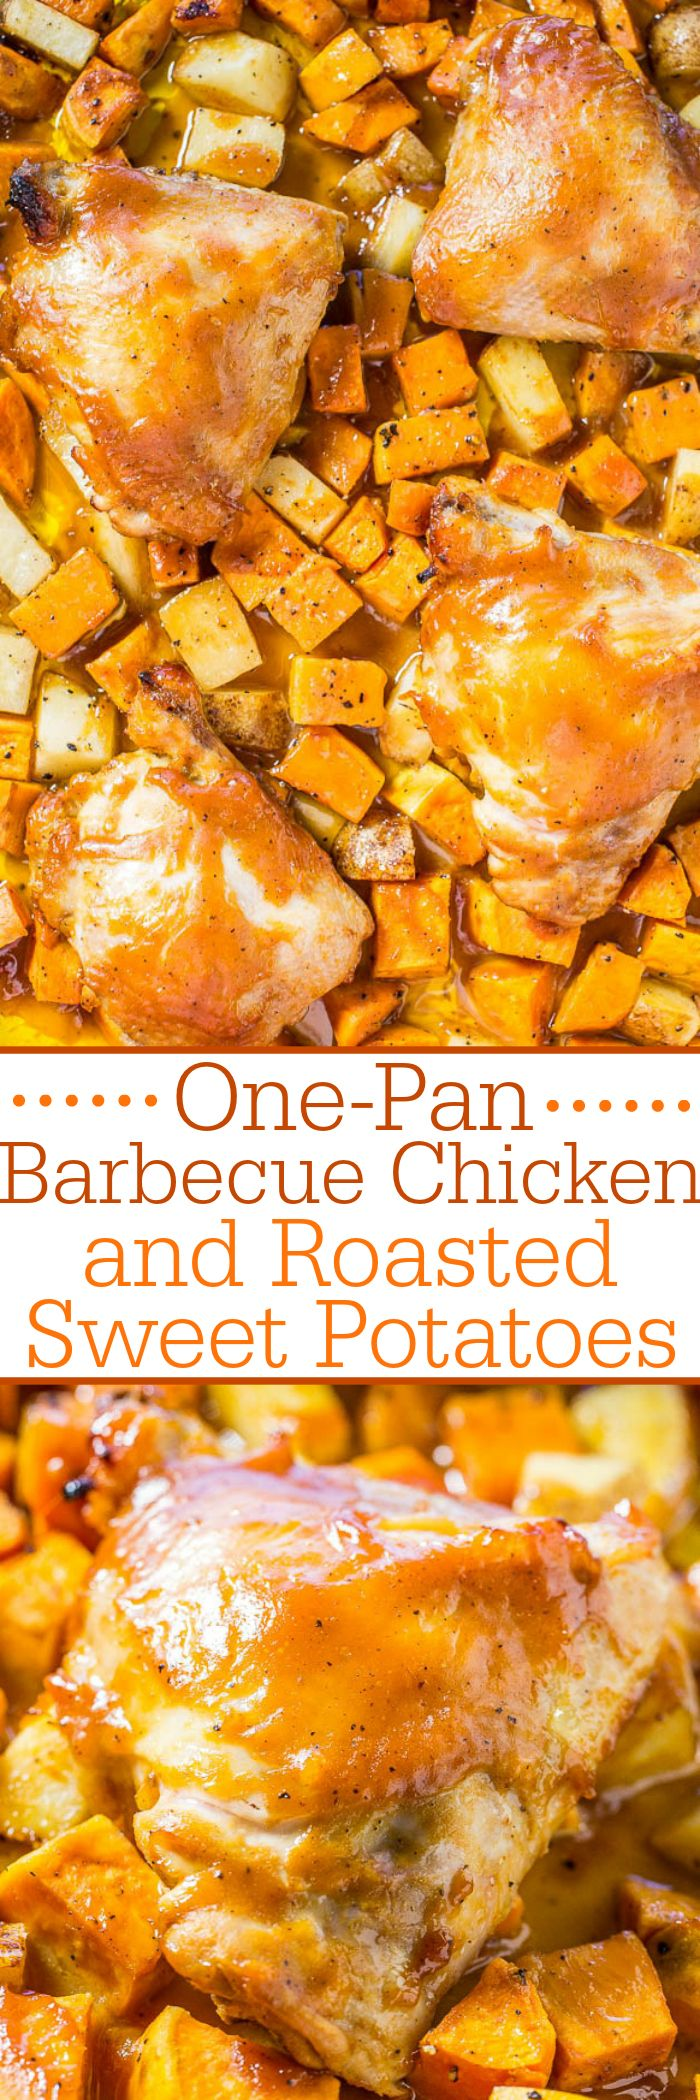 One-Pan Barbecue Chicken and Roasted Sweet Potatoes - Averie Cooks